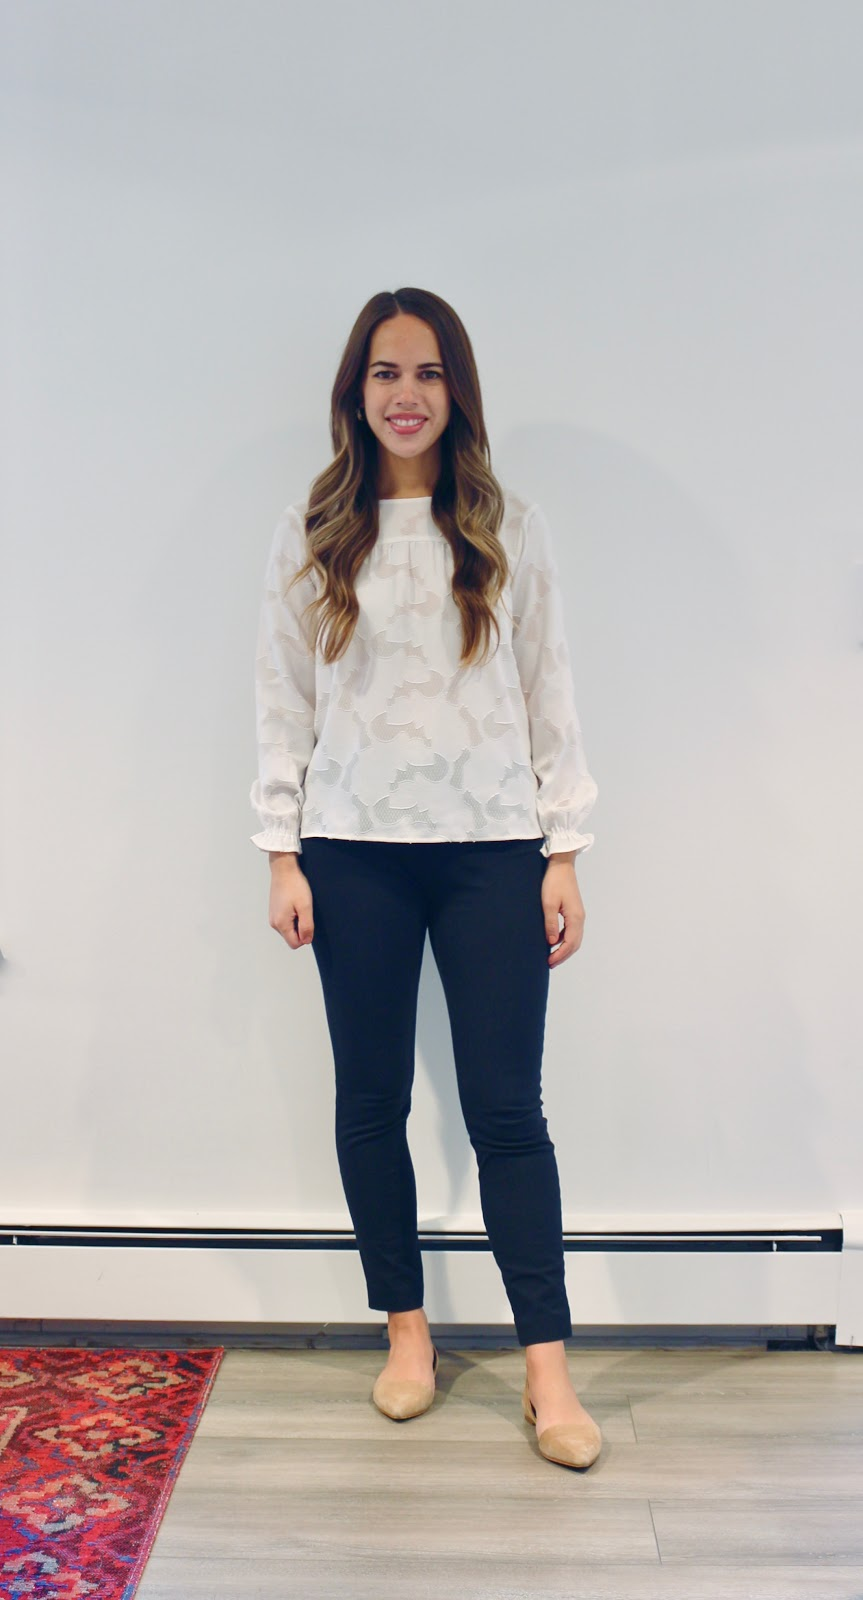 Jules in Flats - Floral Jacquard Blouse (Business Casual Workwear on a Budget)